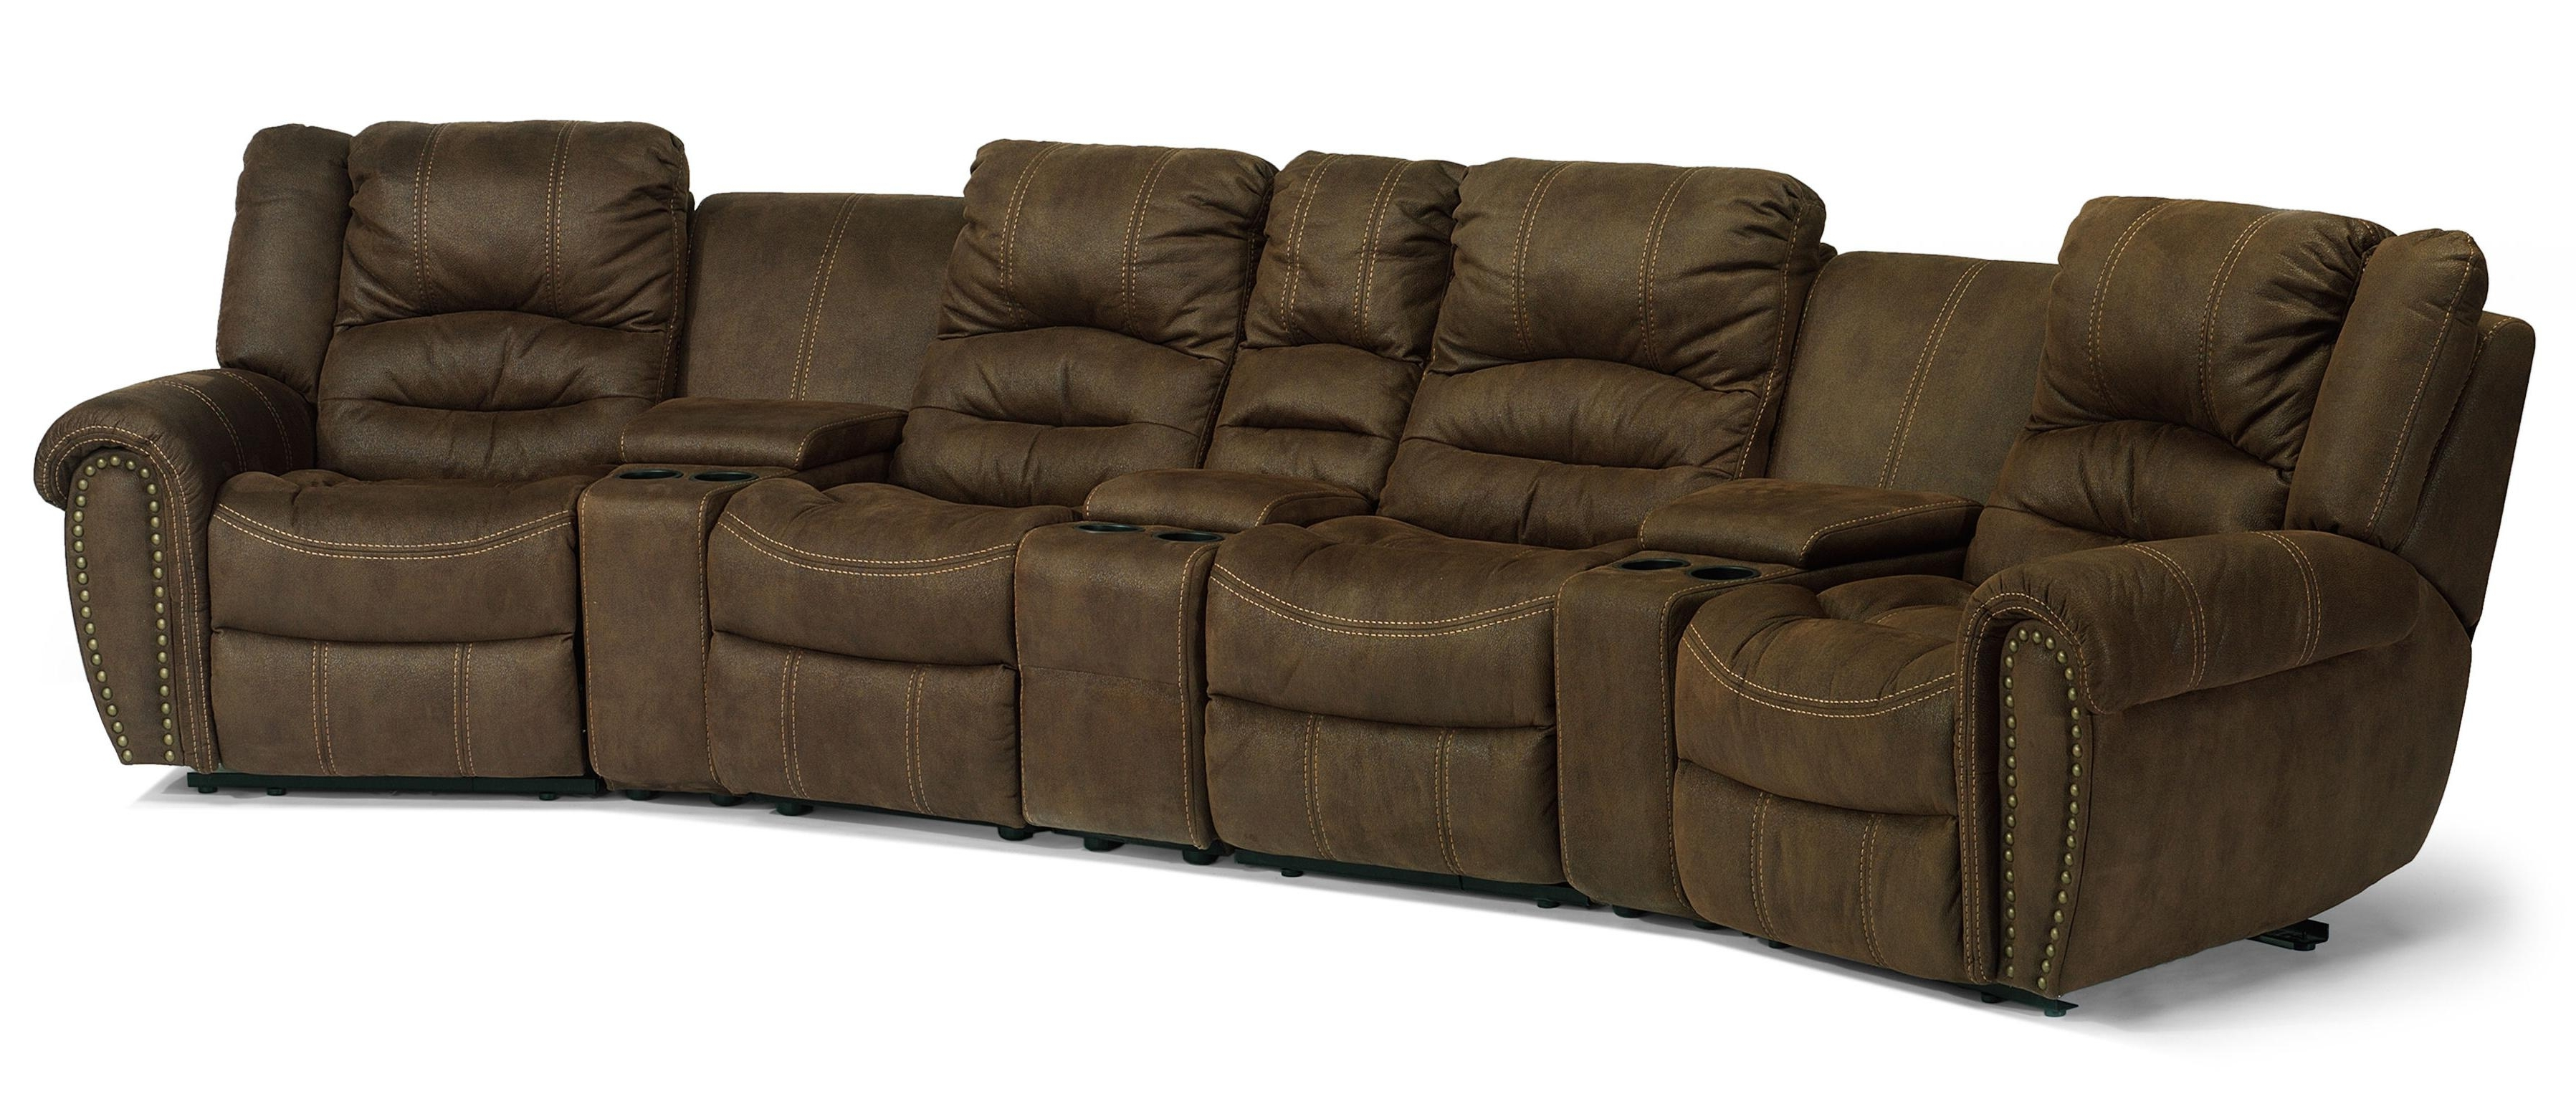 - 20 Best Ideas Of Curved Recliner Sofas